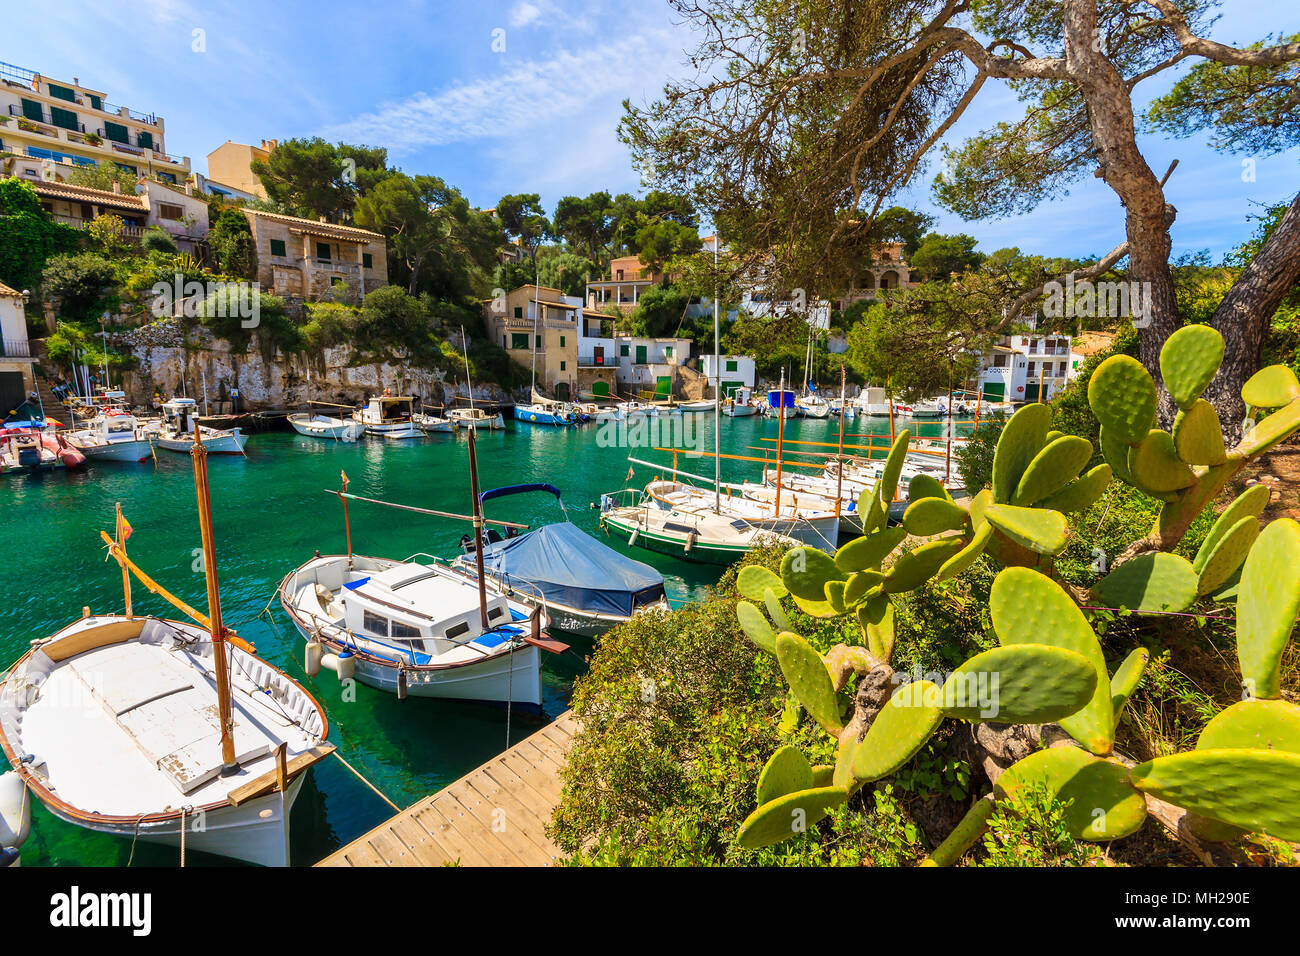 Typical fishing boats in beautiful port, Cala Figuera village, Majorca island, Spain - Stock Image